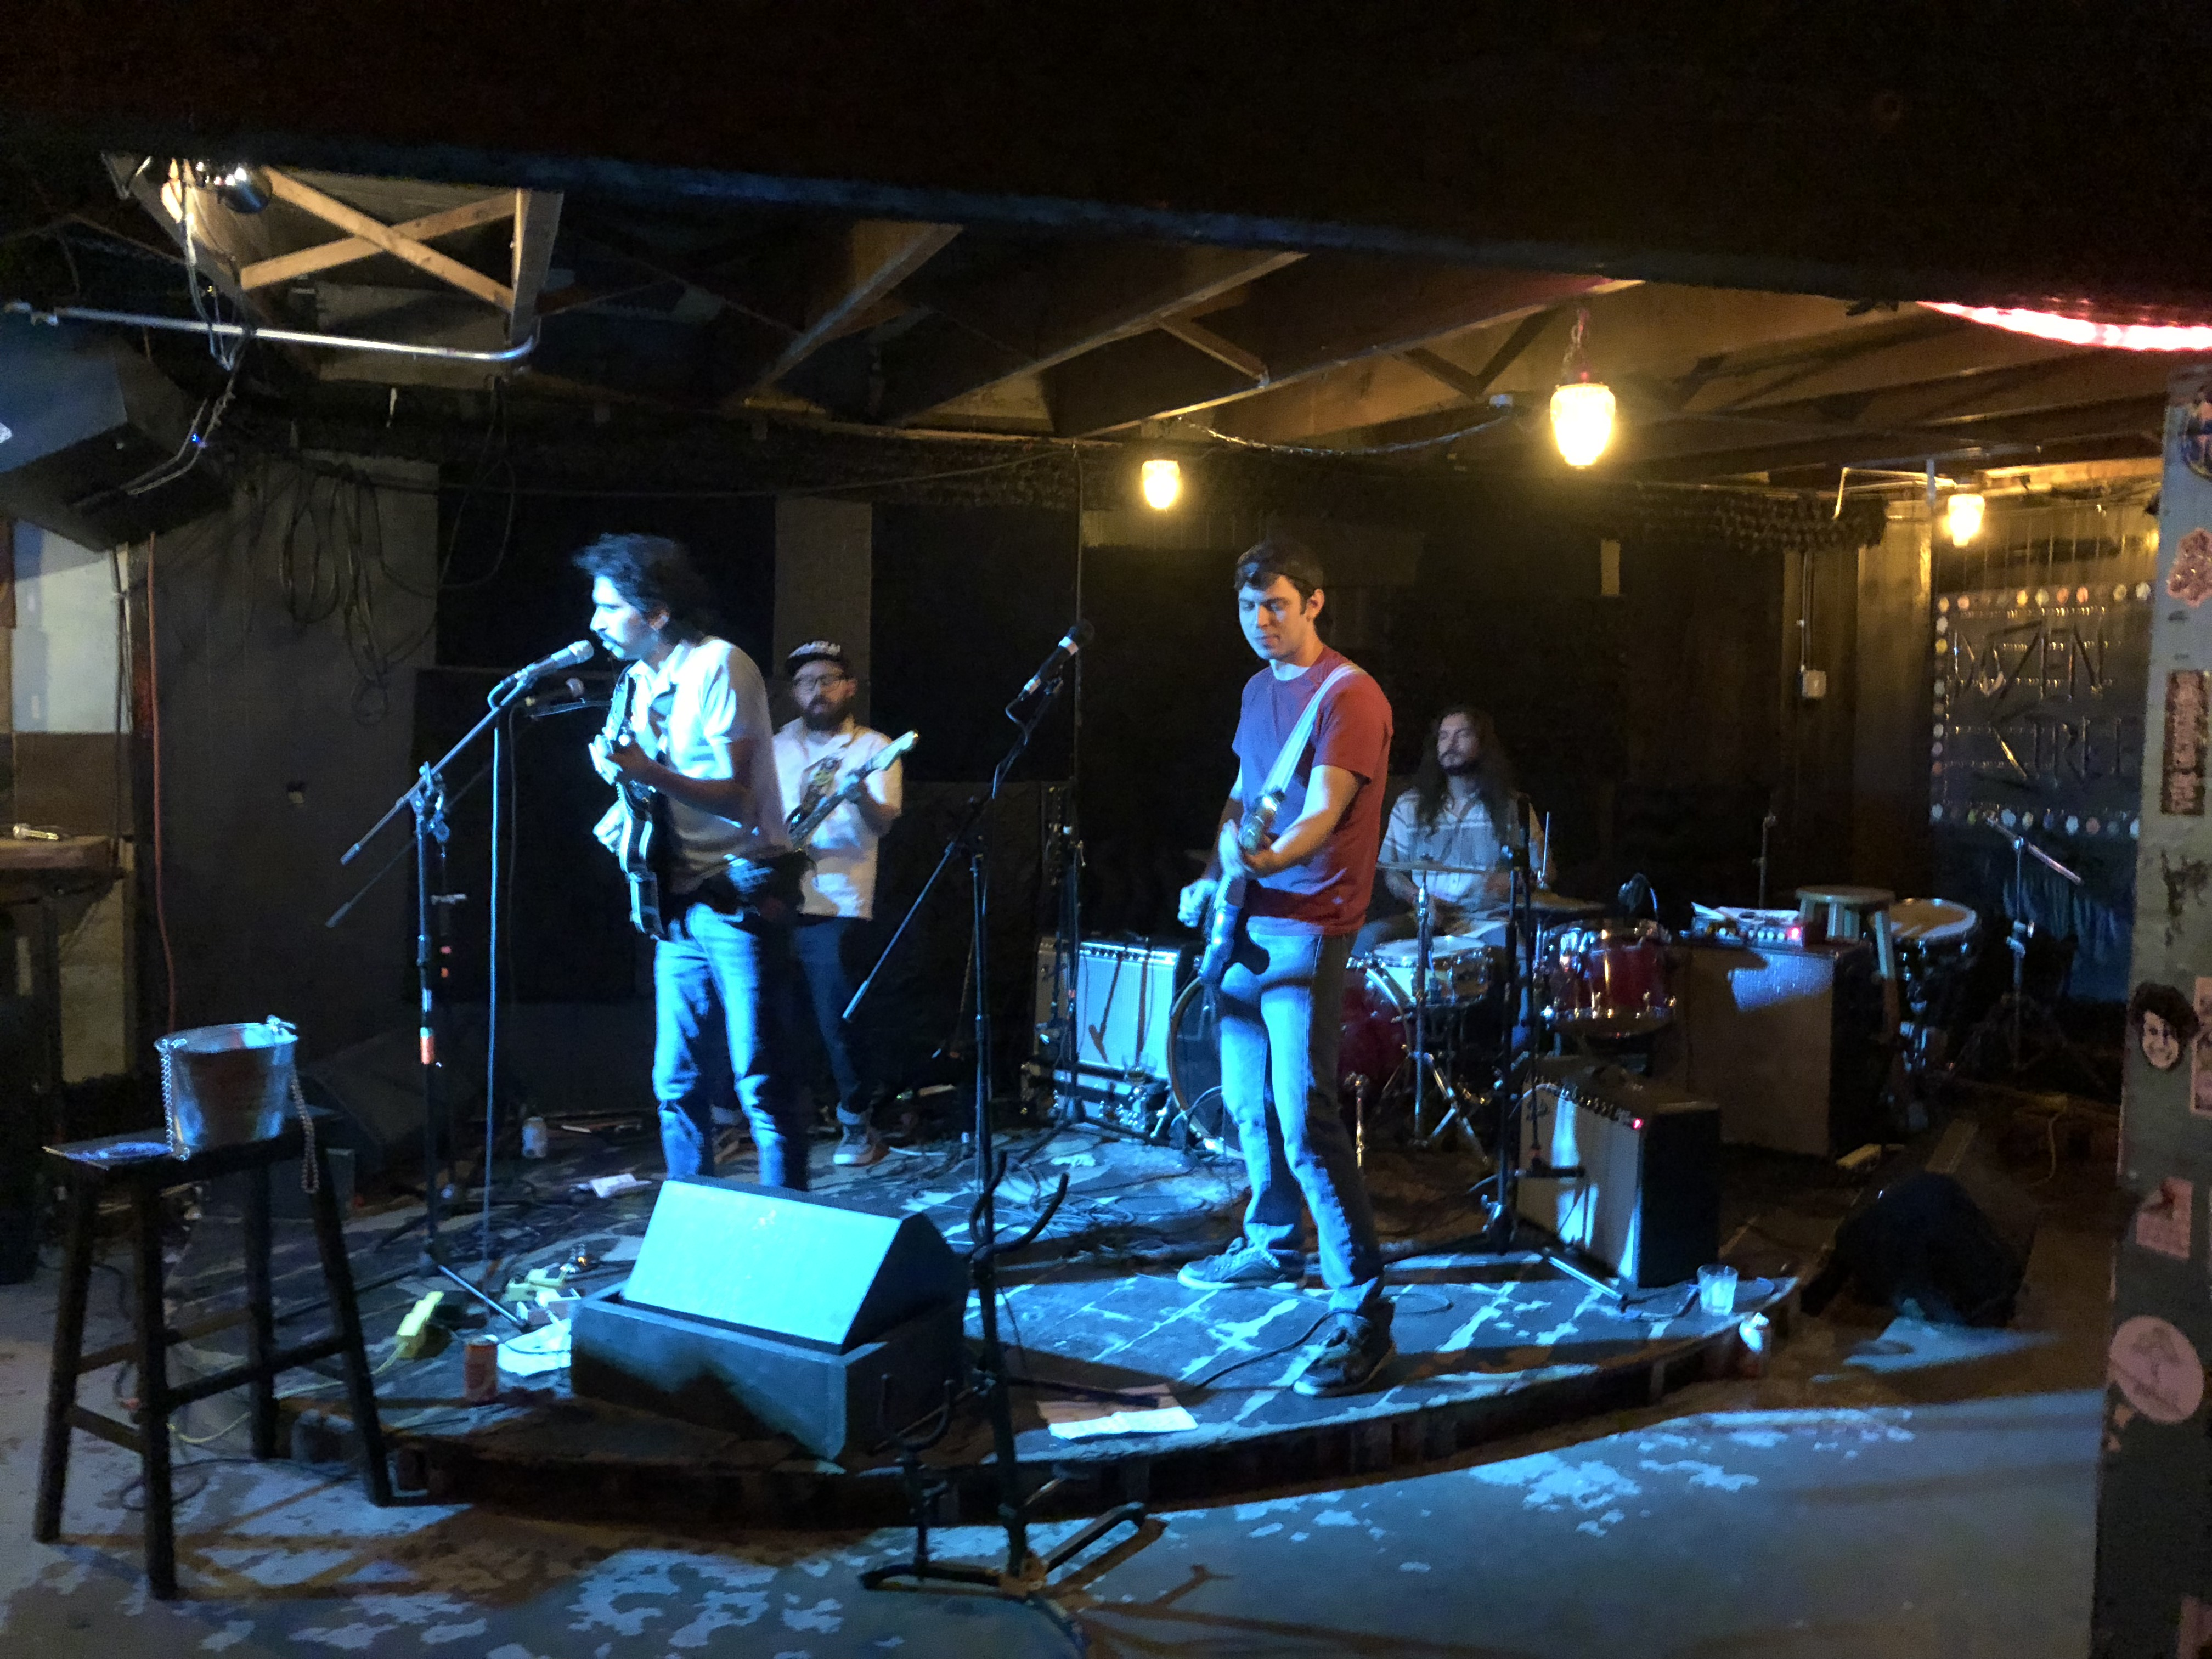 Live music review: An Automatic Weekend at Austin's Dozen Street - The Cosmic Clash